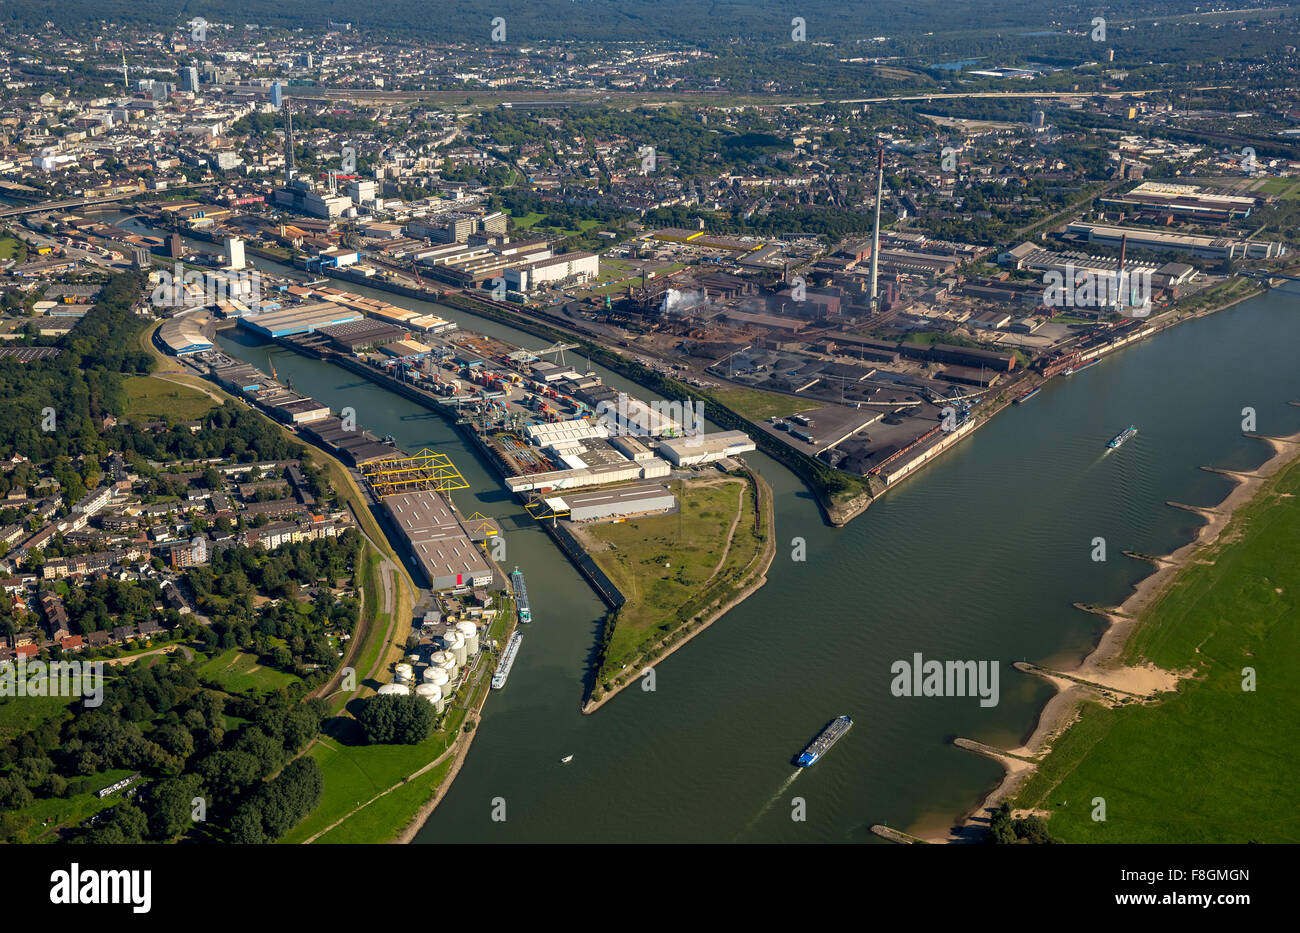 Ruhr estuary, The Ruhr, Kassel field, Rhein, Duisport, inland port on the River Rhine and River Ruhr, Duisburg port - Stock Image